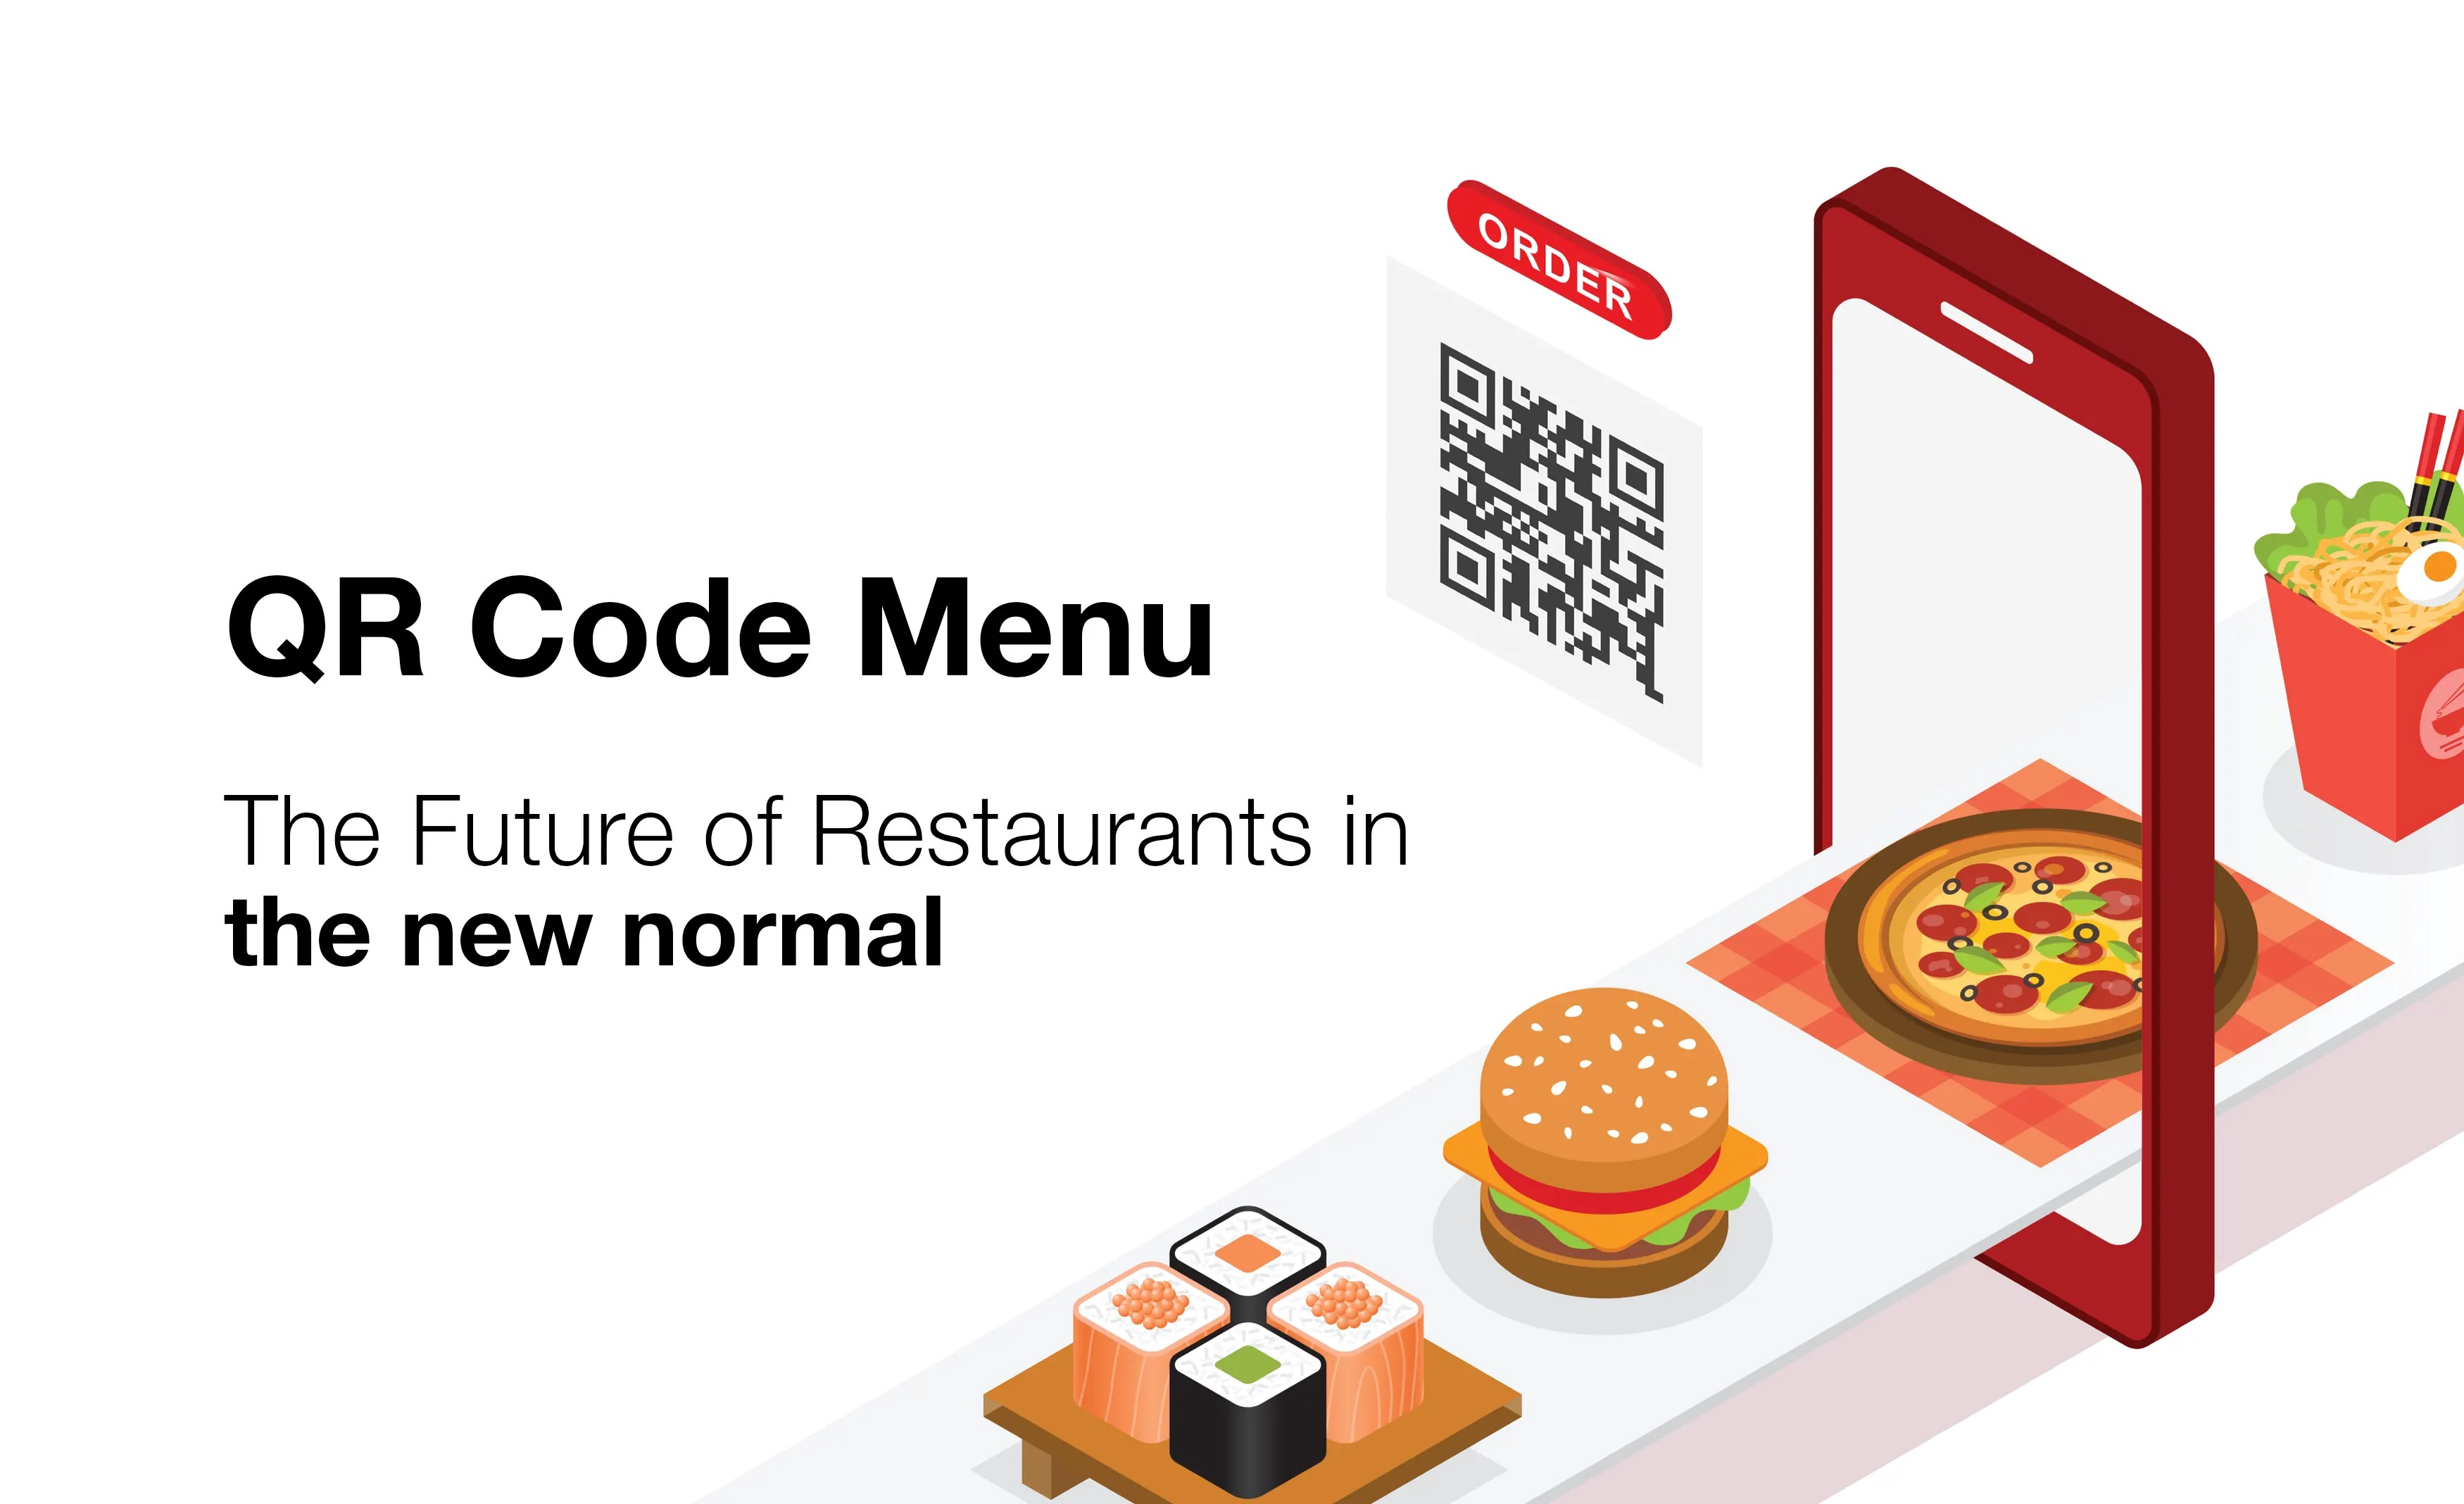 How To Make Your Restaurant Or Bar Menu In A Qr Code By Roselle Ebarle The Innovation Medium